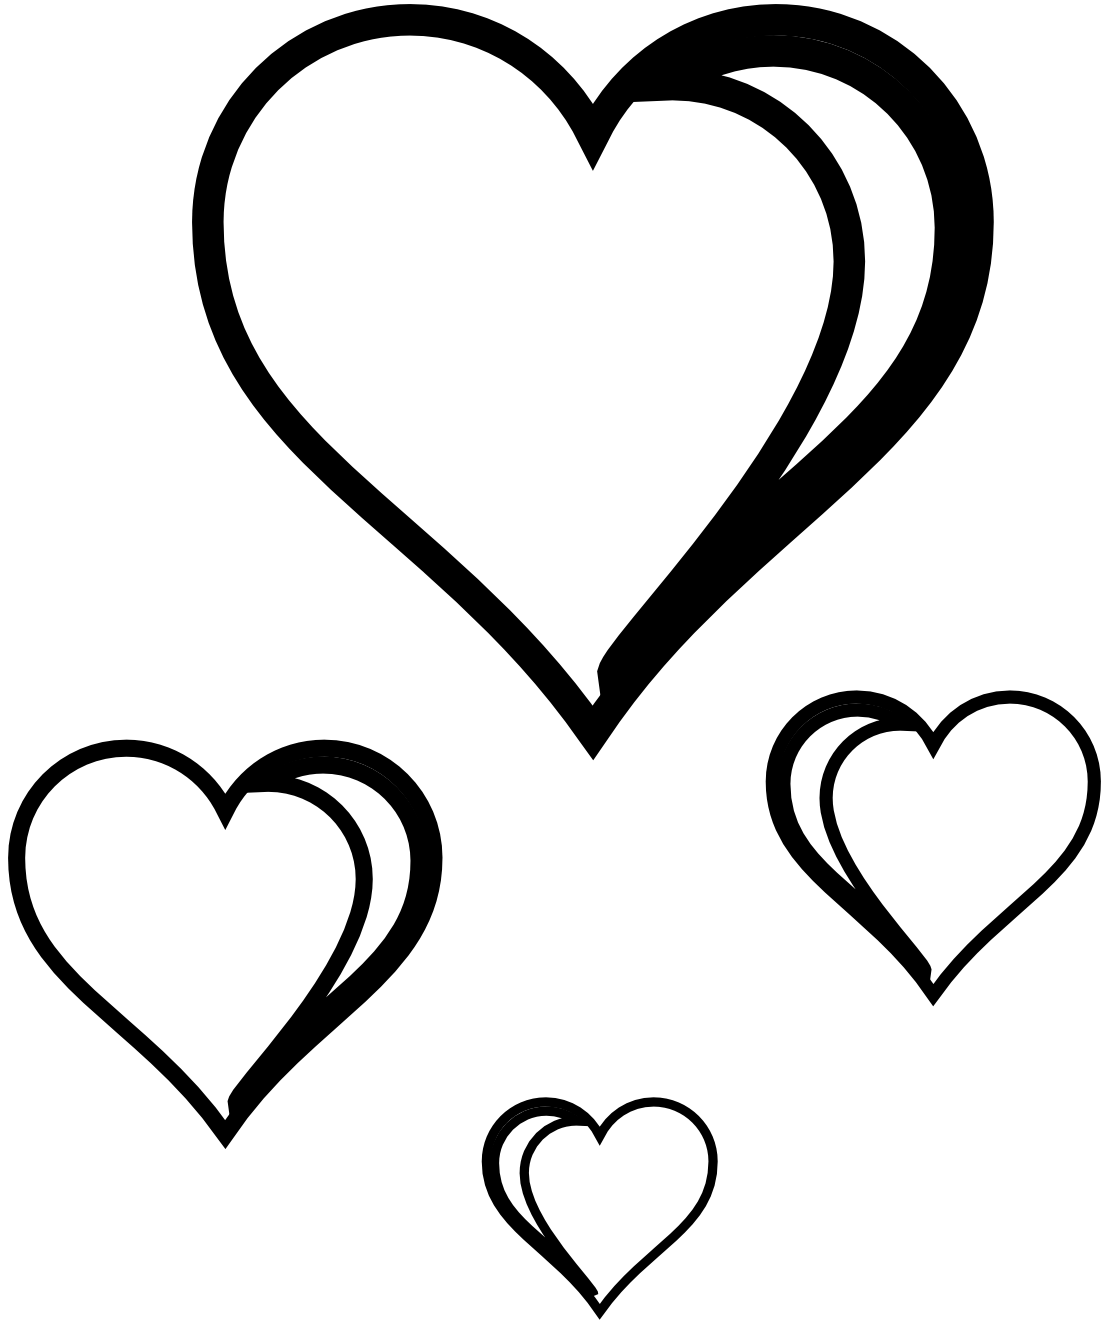 Heart Clipart Black And White Clipart Panda